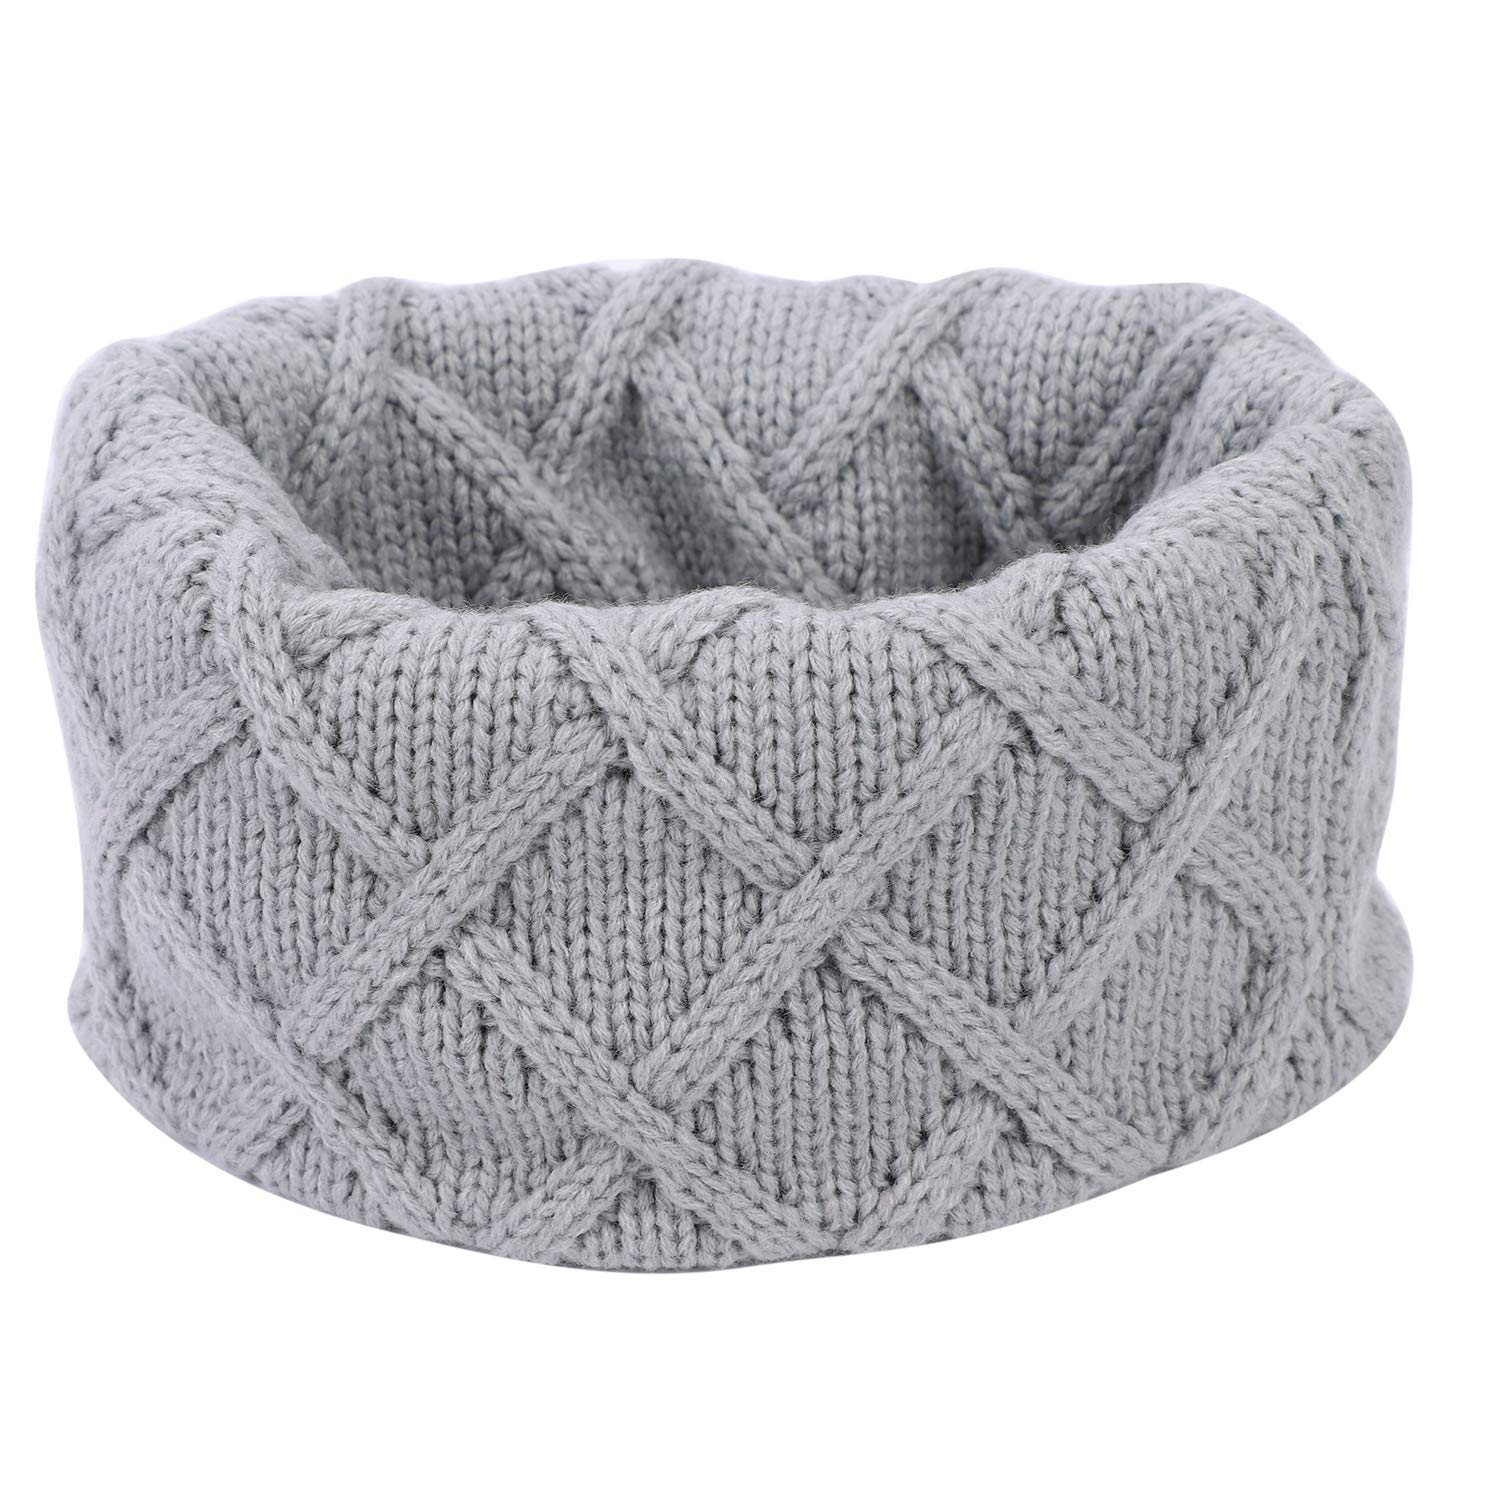 Kid Toddler Winter Infinity Scarf Warm Knit Scarf Circle Scarf Windproof Neck Warmer for 0-11 Y Boys Girls